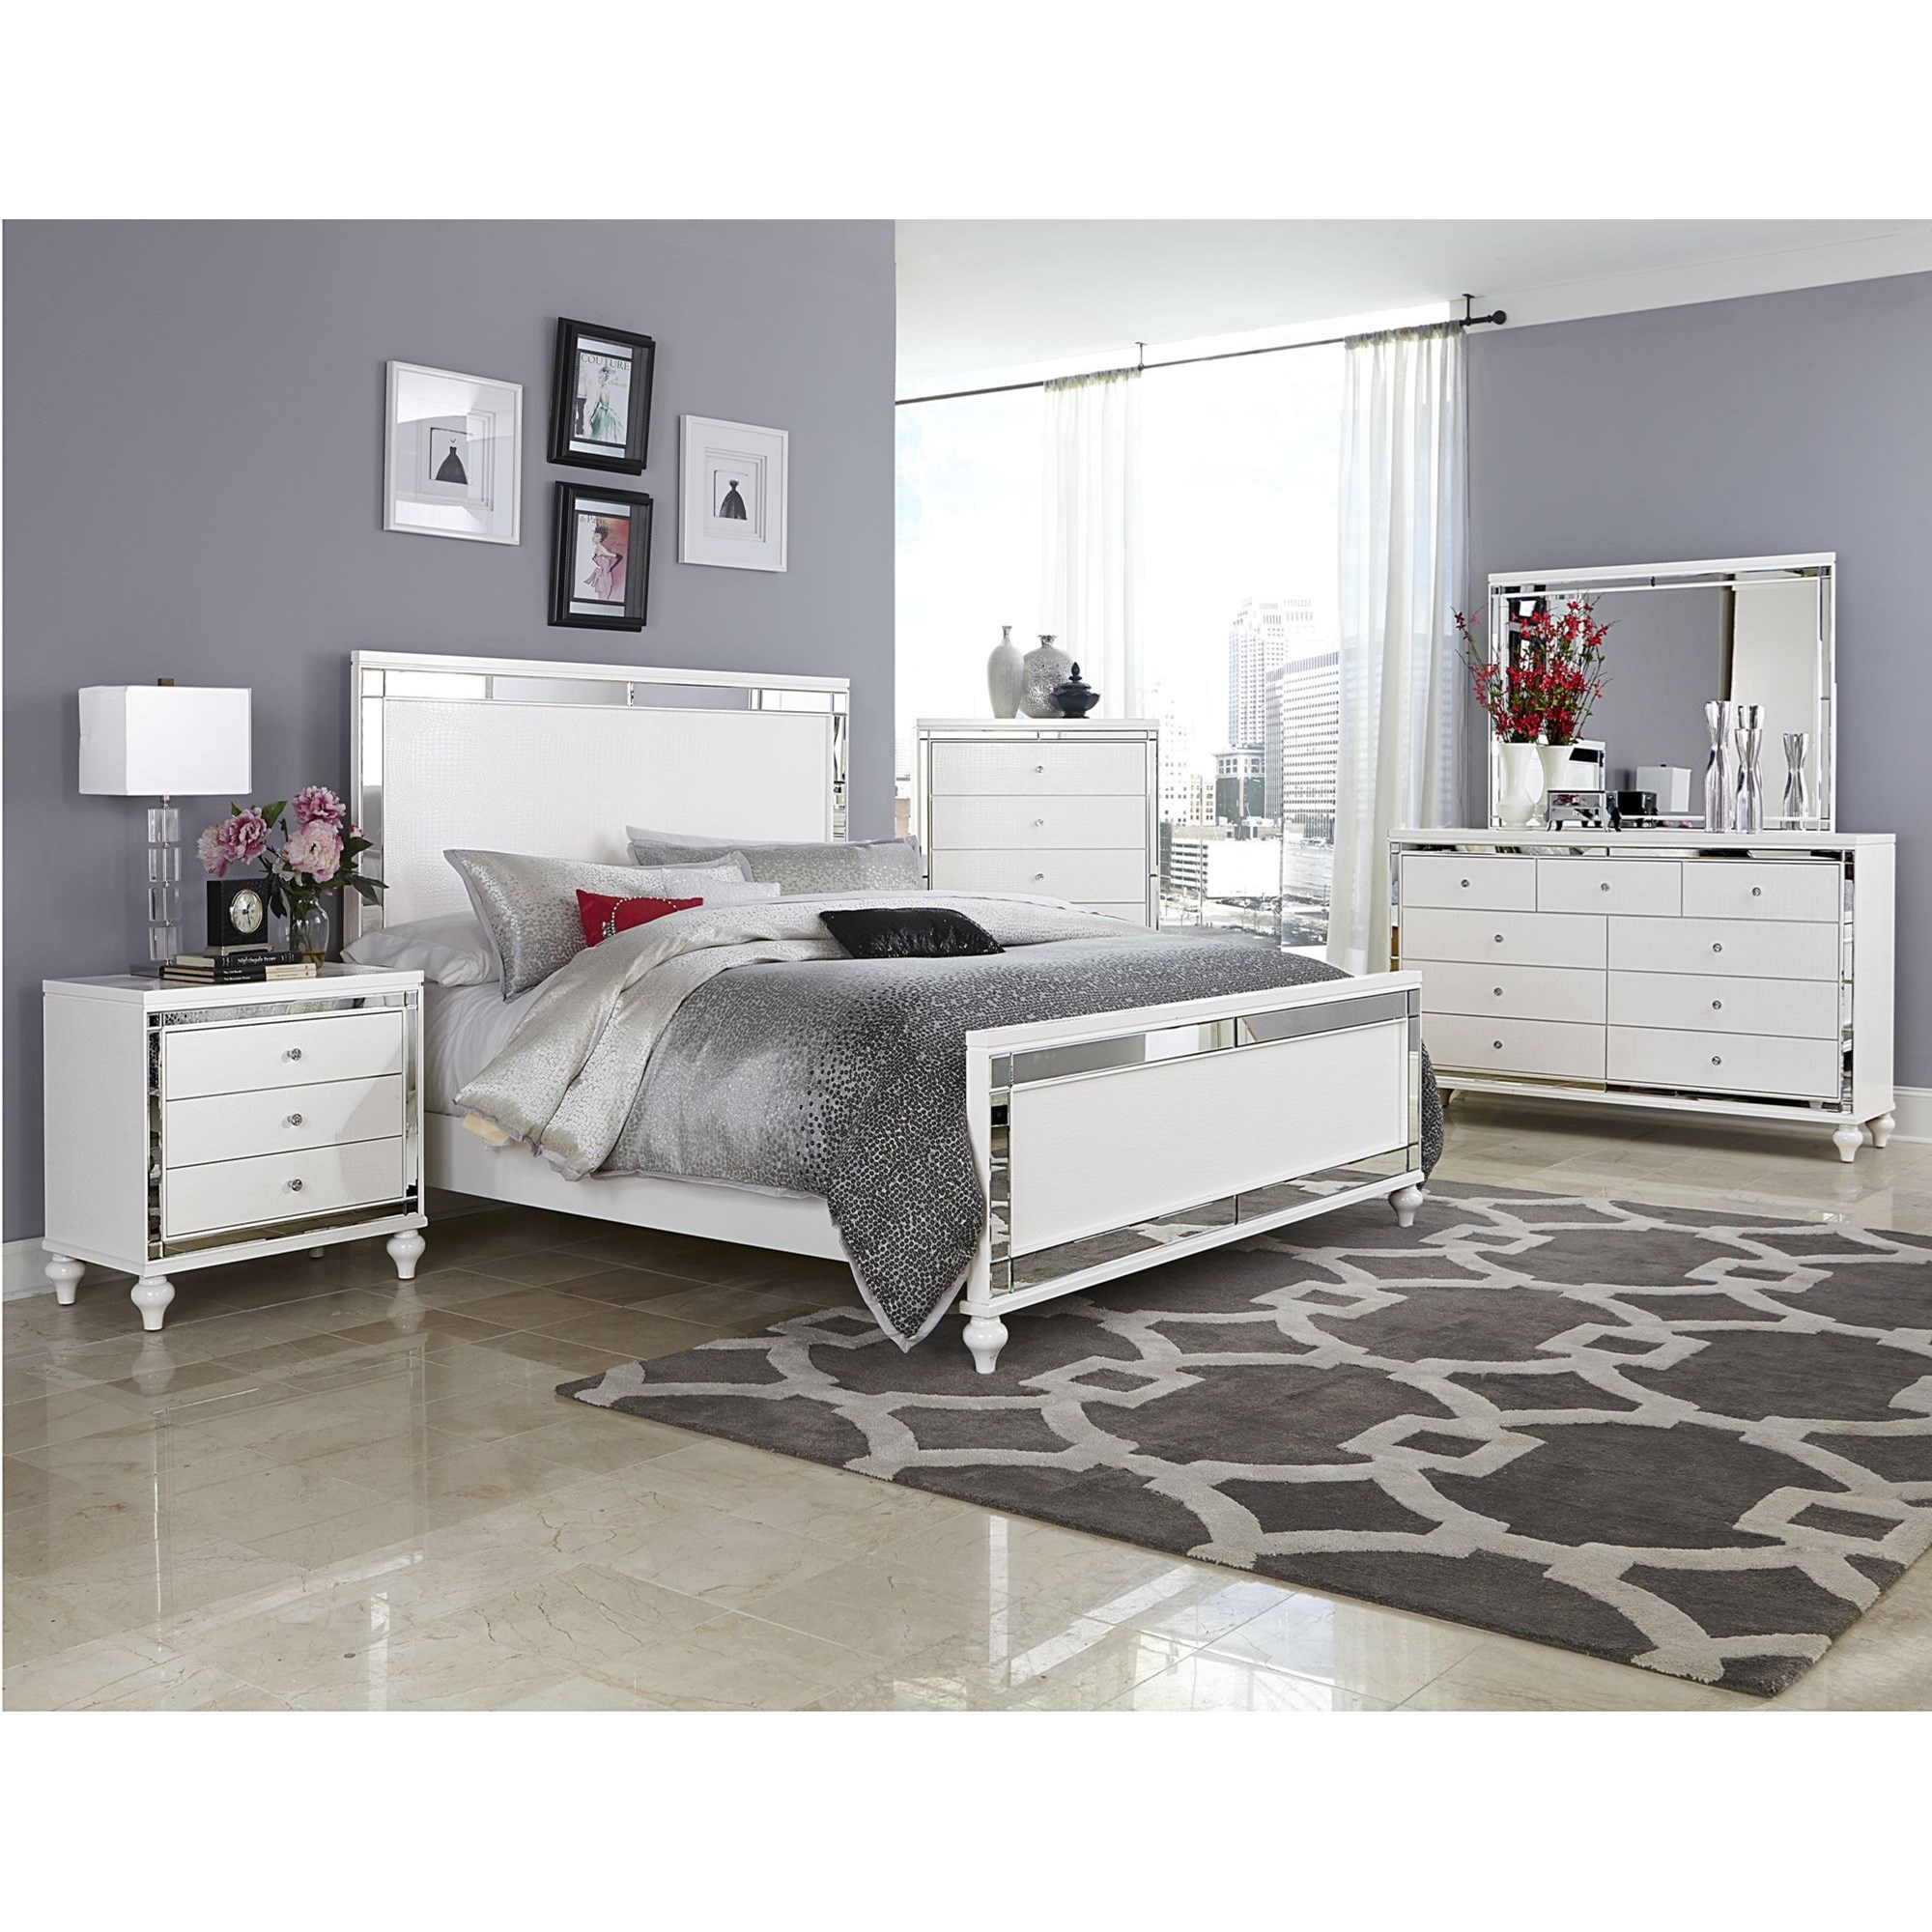 Alonza Queen Bedroom Group by Homelegance at Value City Furniture